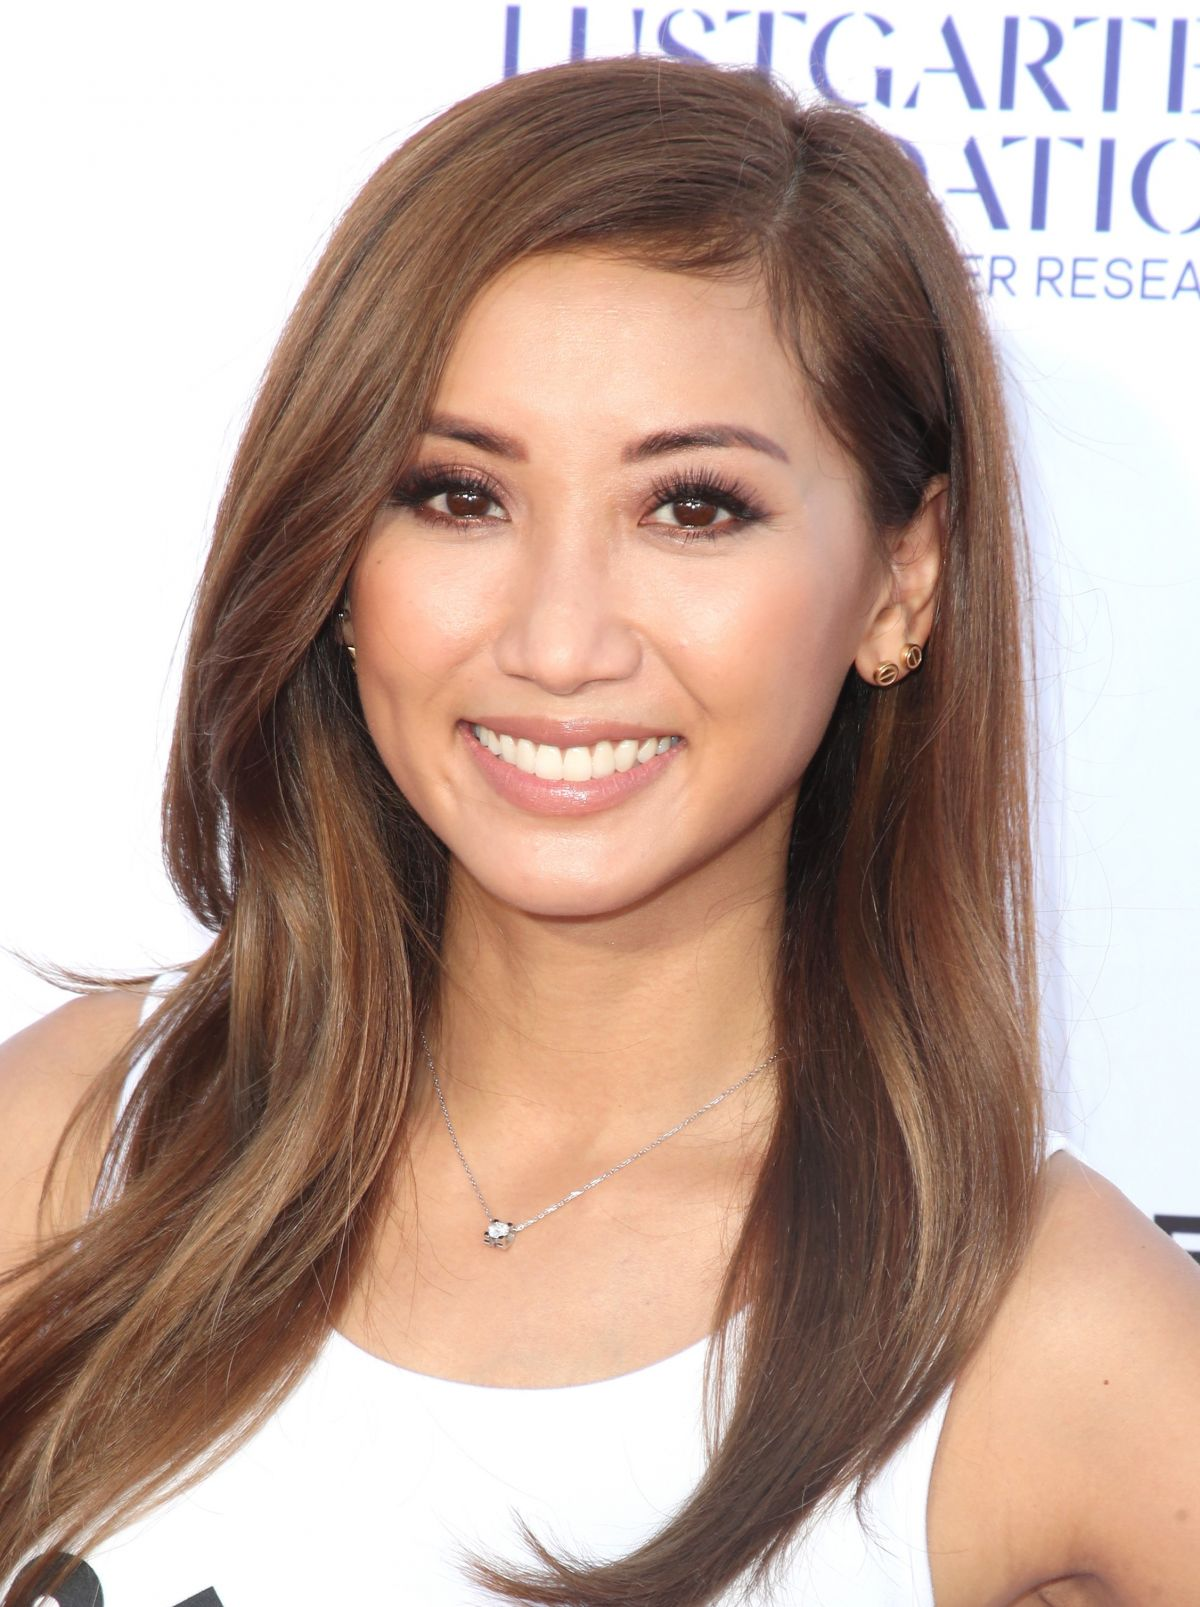 Brenda Song American Actress, Model